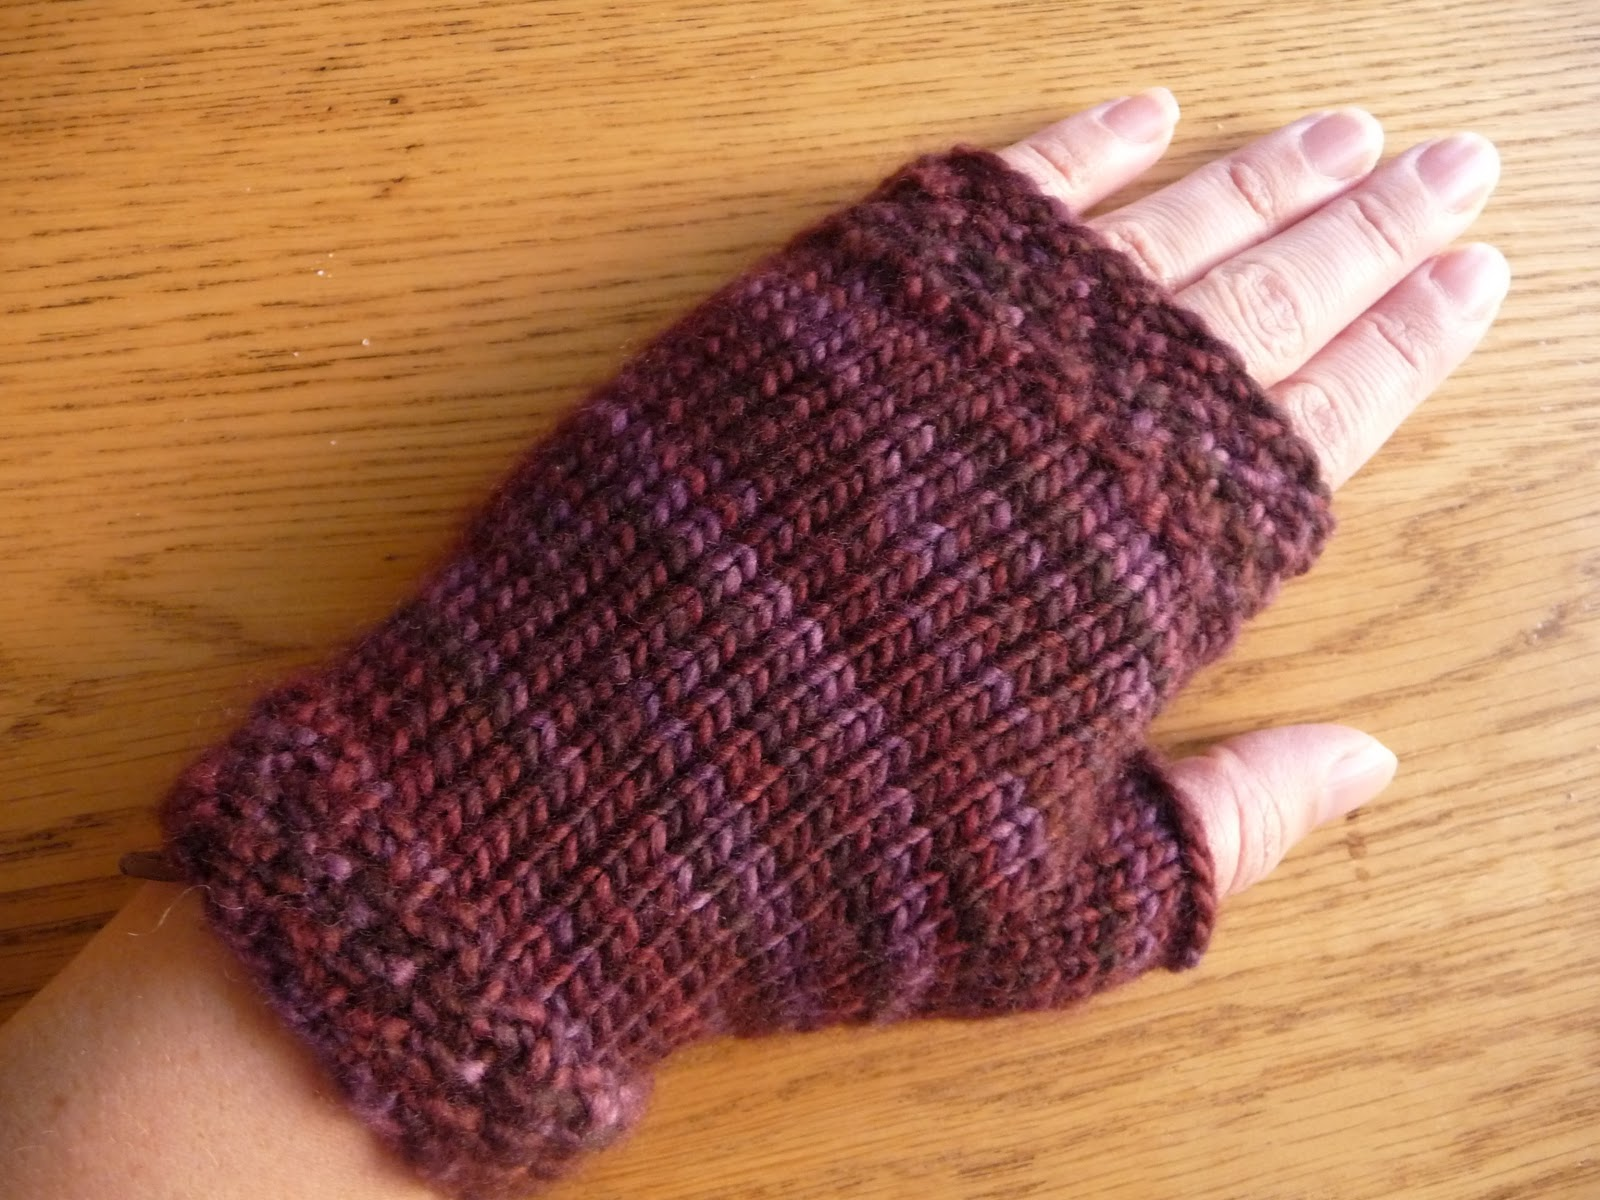 Fingerless Mittens Knitting Pattern - My Patterns